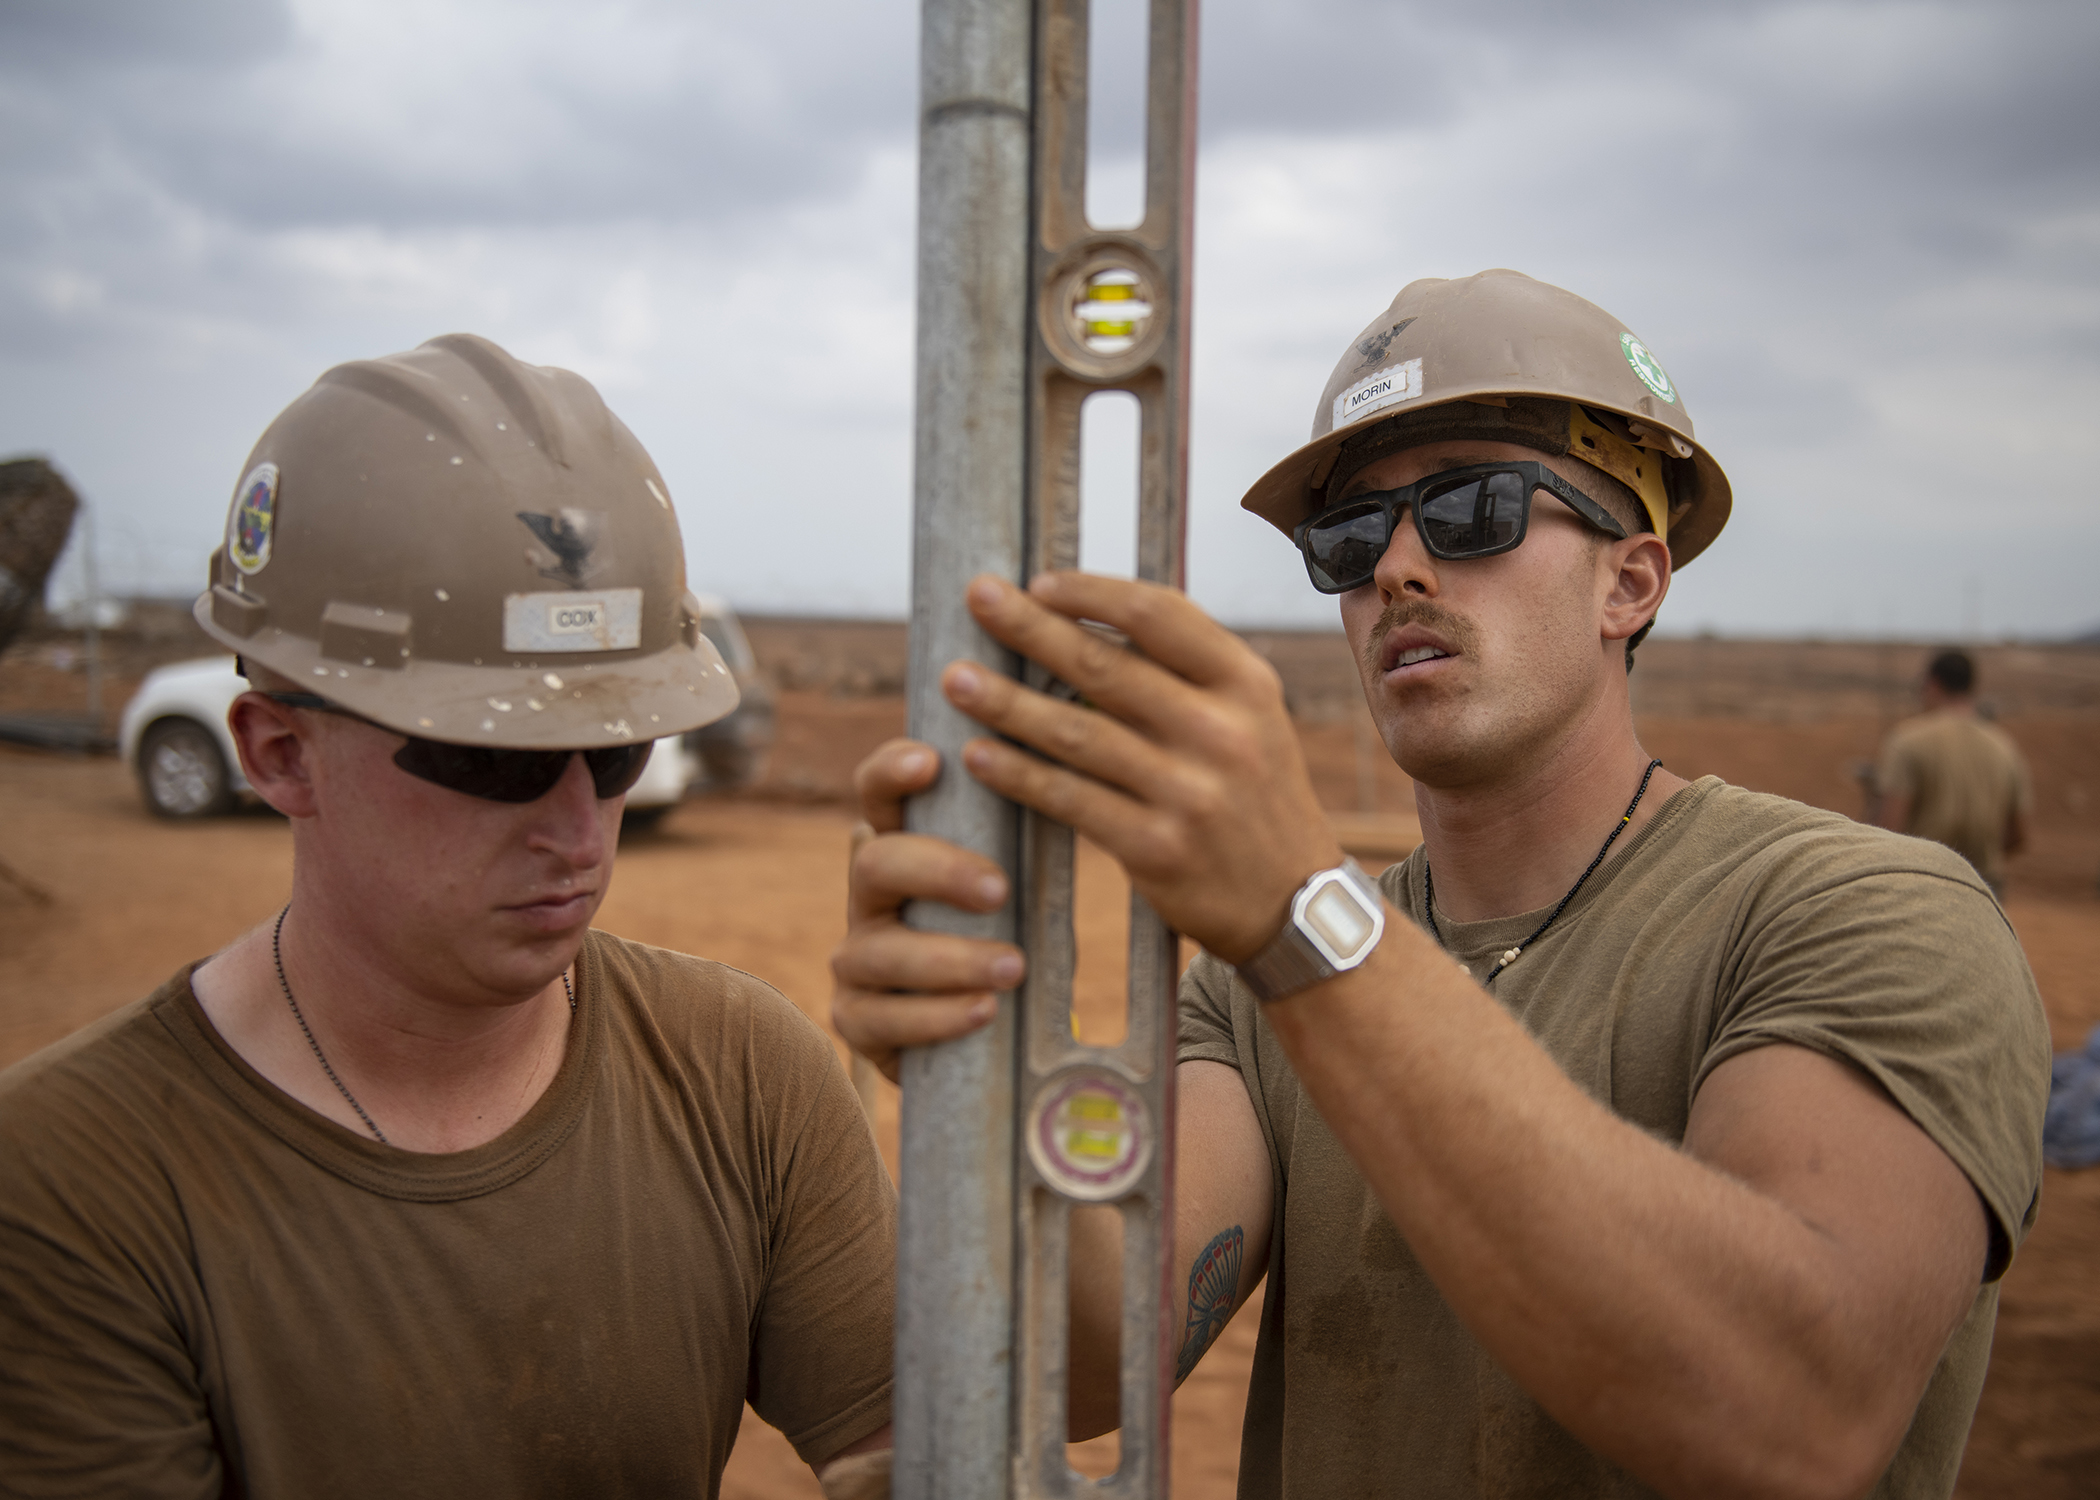 U.S. Navy Petty Officer 3rd Class Austin Cox, left, and Michael Morin, Seabees assigned to Naval Mobile Construction Battalion 1, Combined Joint Task Force-Horn of Africa, Camp Lemonnier, Djibouti, build a fence during the construction of the future Ali Oune, Djibouti, Women's Medical Clinic, Dec. 27, 2018. The clinic is intended to enhance the Ministry of Health for Djibouti's ability to provide basic medical, birth and after care to the Ali Oune village and its more than 1,000 residents and rural neighbors. (U.S. Air Force photo by Tech. Sgt. Shawn Nickel)